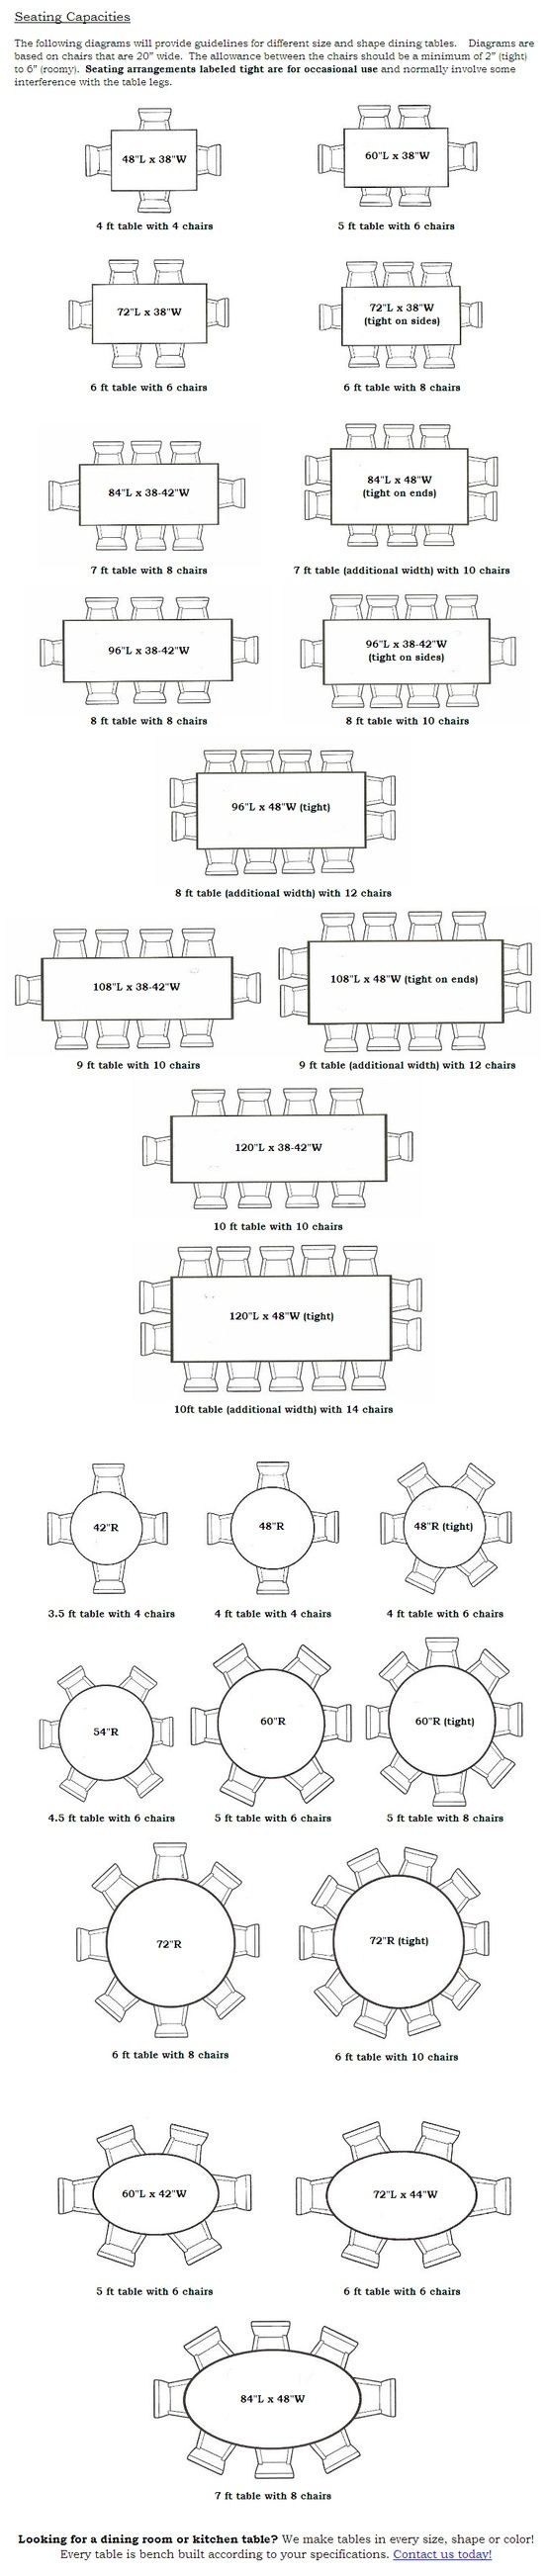 dining table seating capacities chart by size and shape by allyson